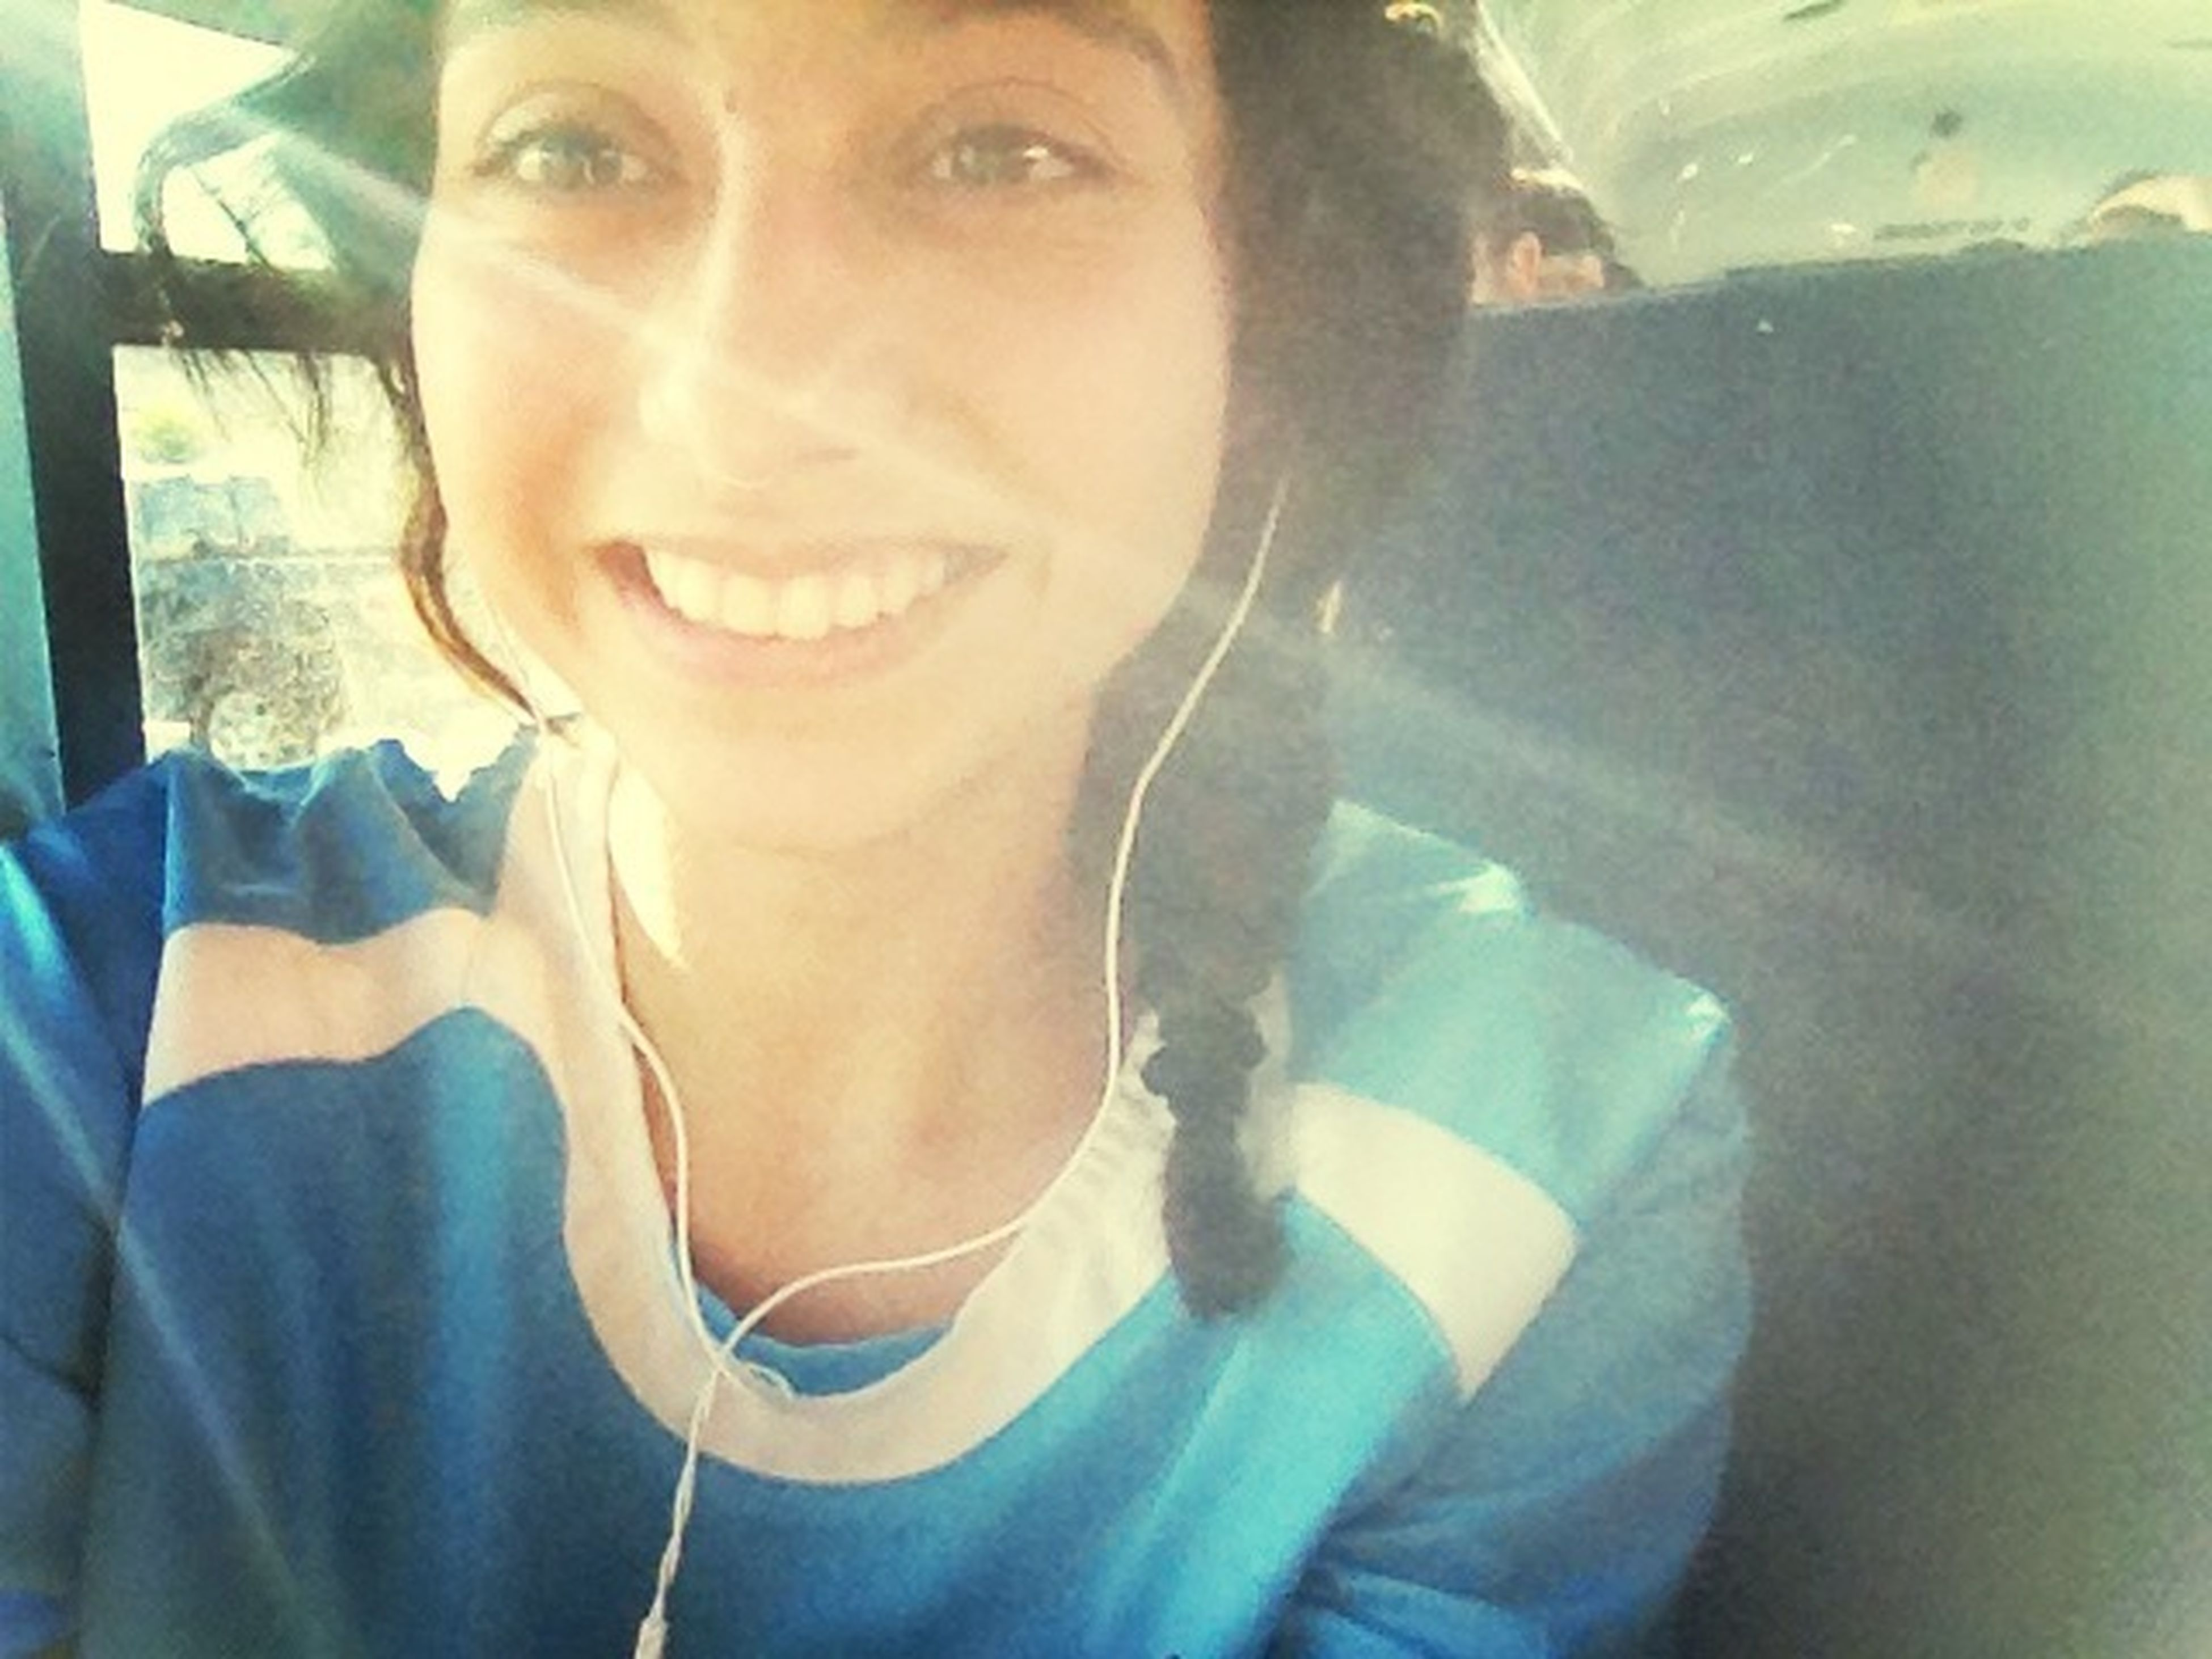 When I was on my way to gilroy to play soccer by the way we won 2-0 #soccer #won #gilroy